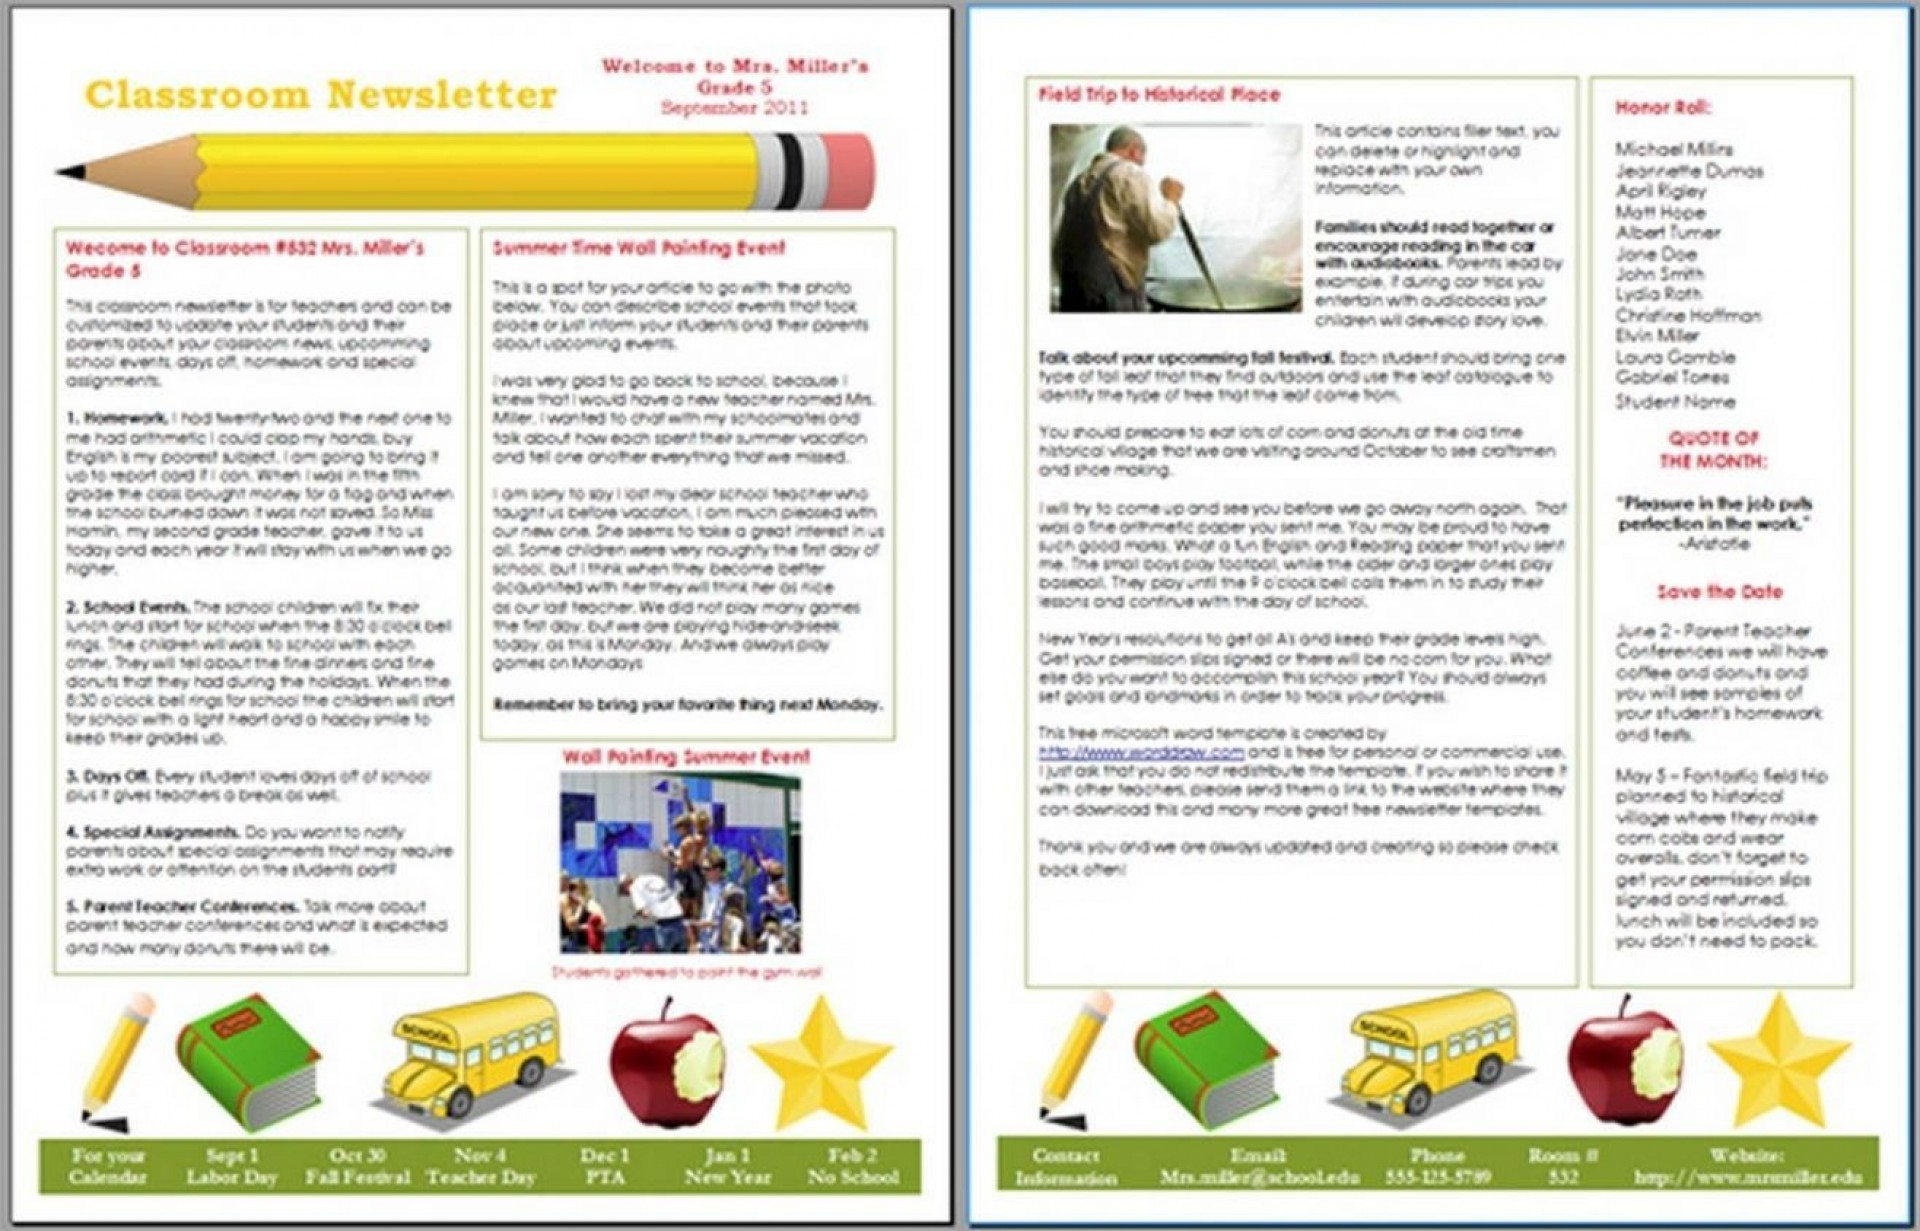 007 Awesome Microsoft Publisher Newsletter Template Image  School Free Download1920